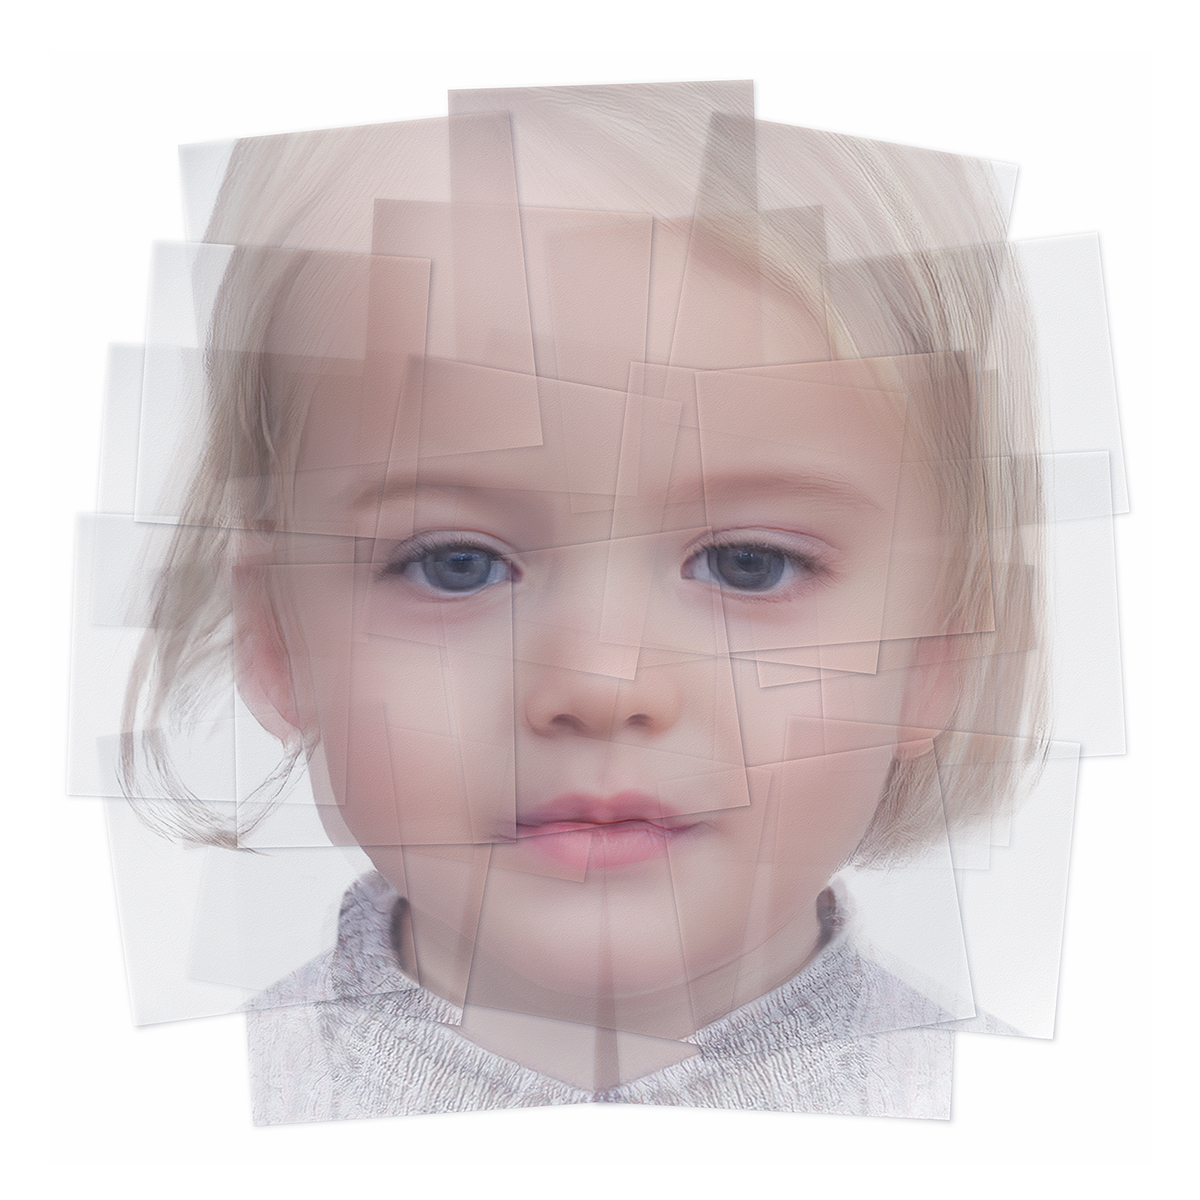 Generated Faces by Artificial Intelligence Kids 001 1 - 2019 - Generated Faces by Artificial Intelligence. Kids. V1